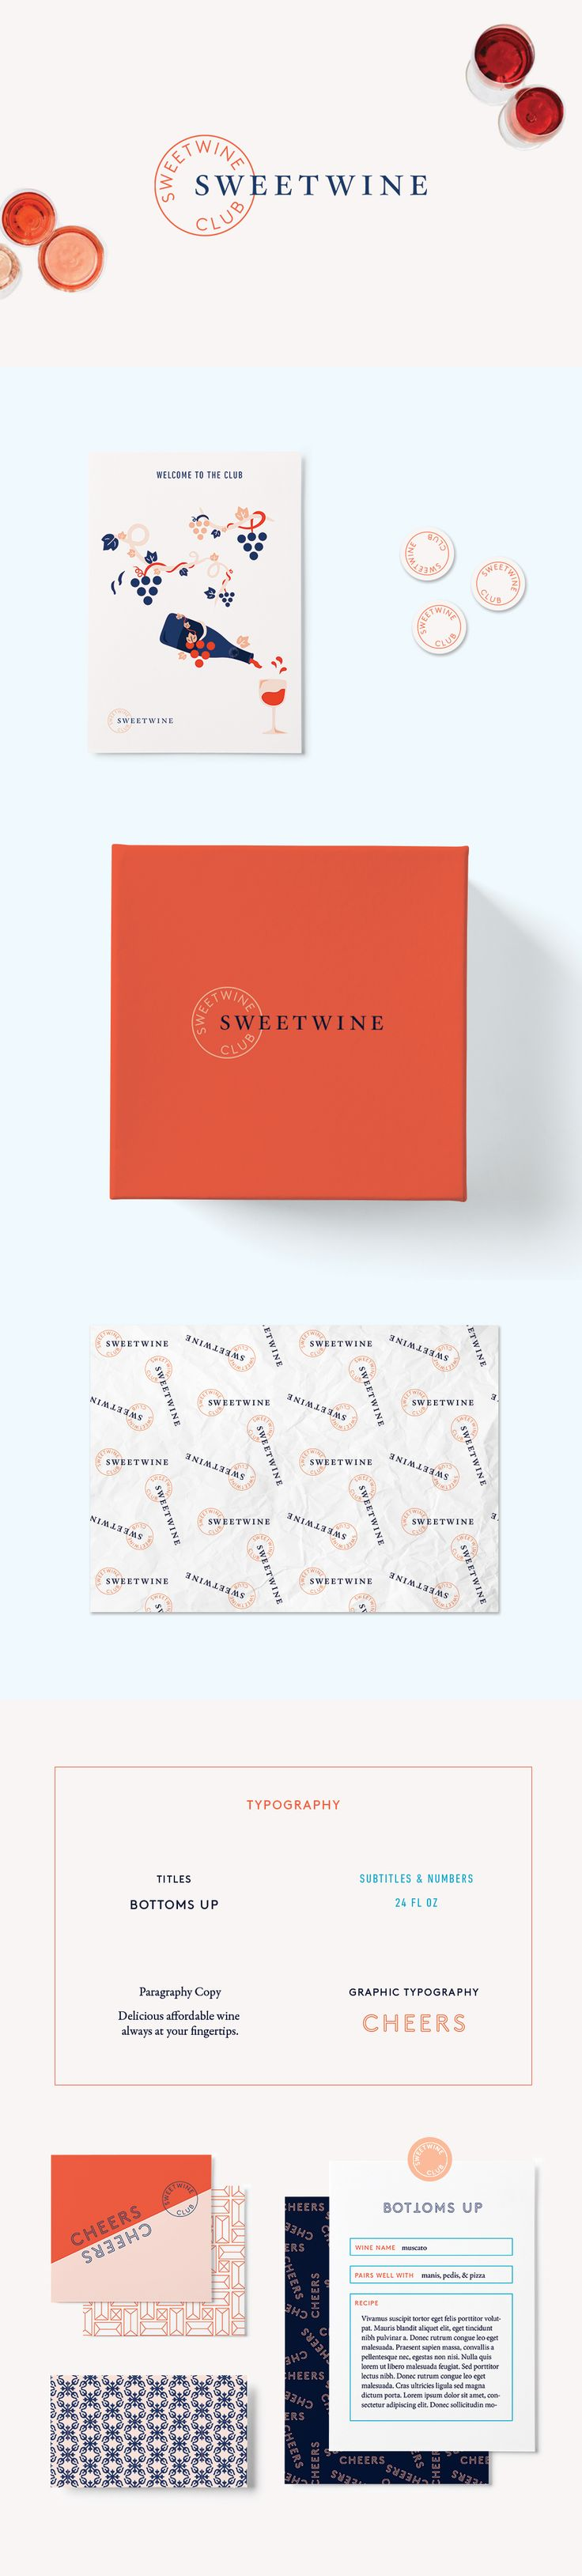 Sweetwine Club brand development and design by Little Trailer Studio. We worked with Sweetwine club launch their business and develop their brand so that they can position themselves in the wine club marketplace and attract their target customer.